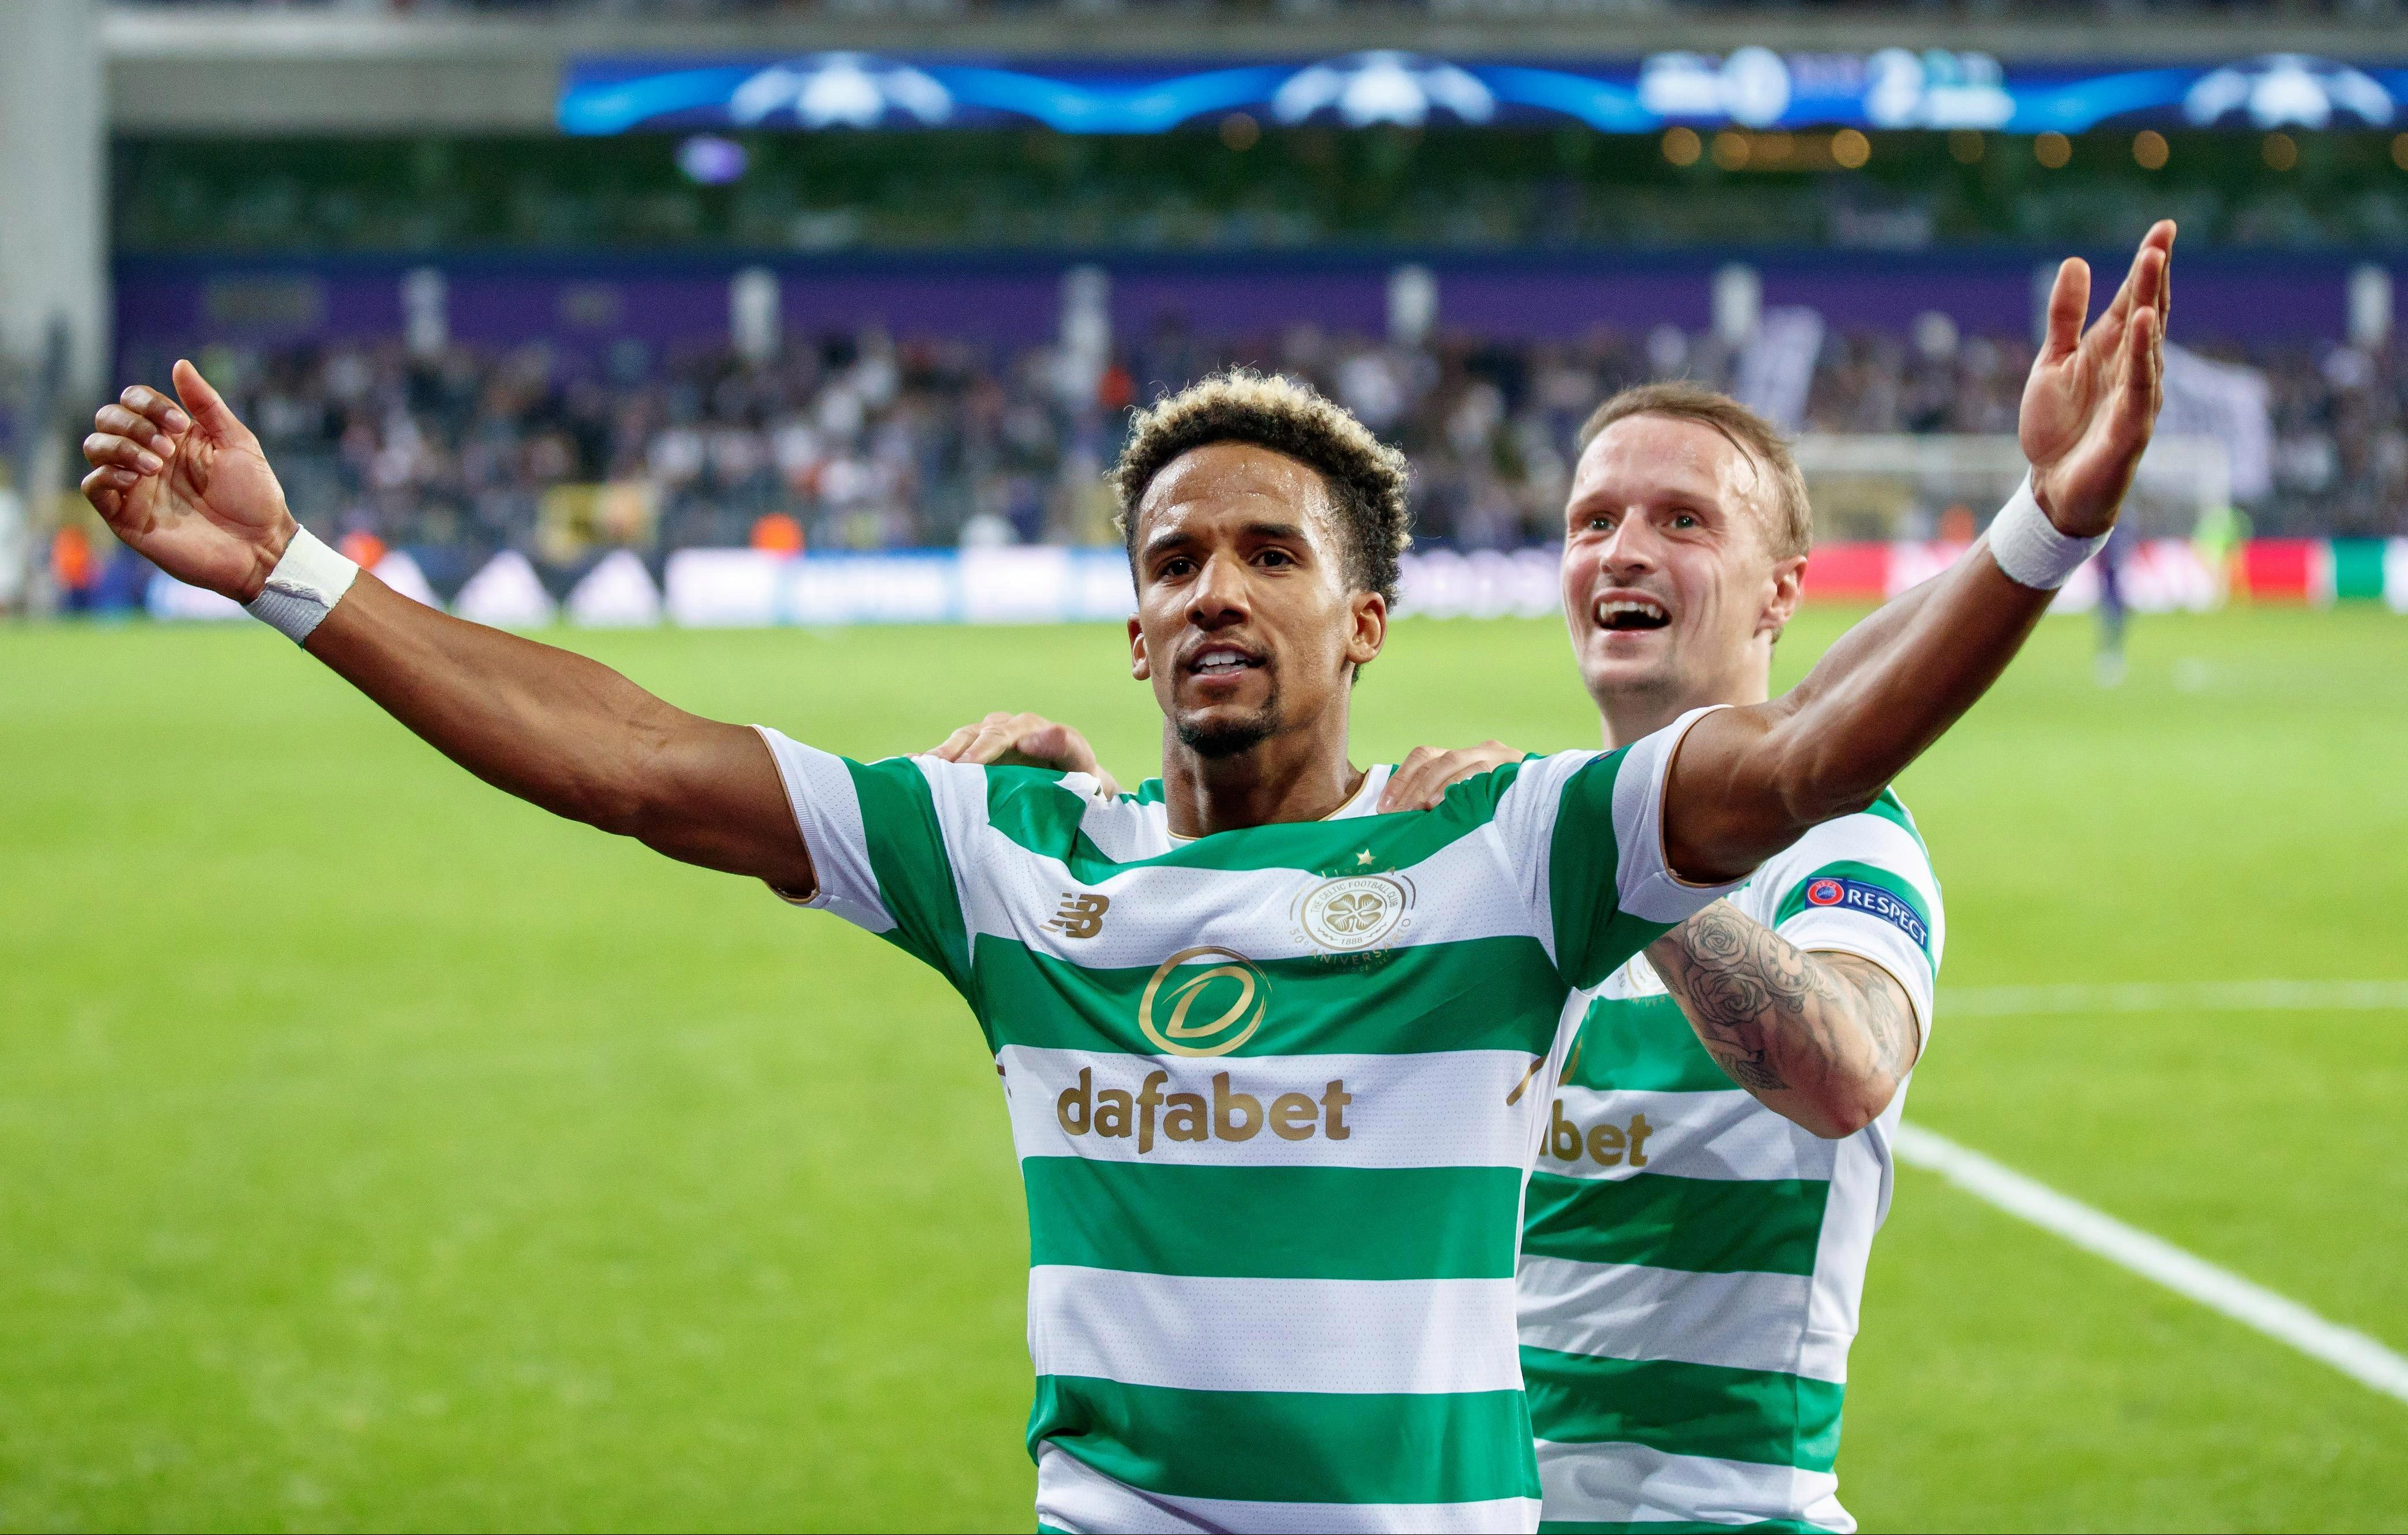 Scott Sinclair has helped Celtic to their seventh straight league title this season